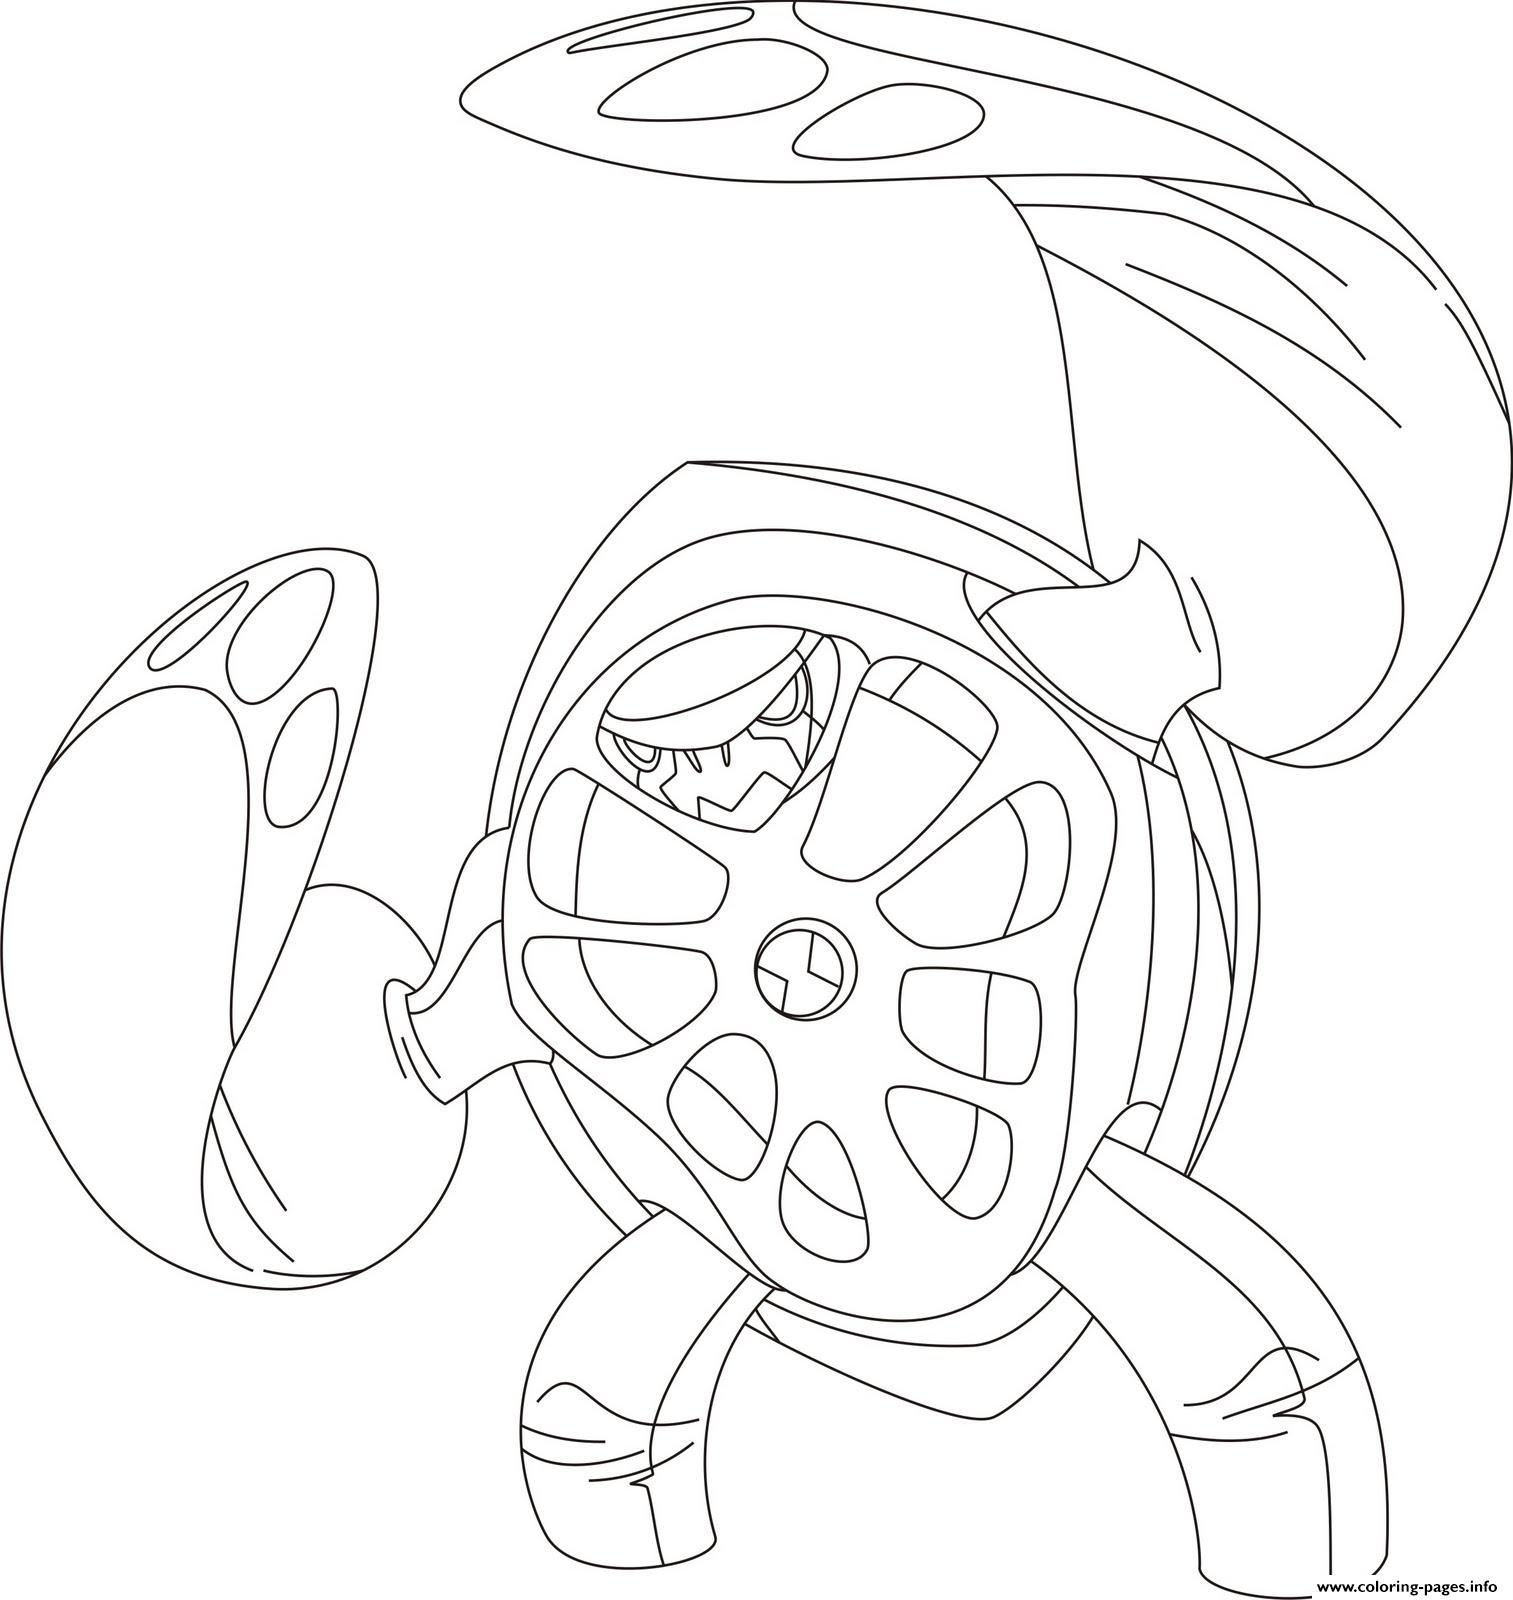 Dessin Ben 10 118 Coloring Pages